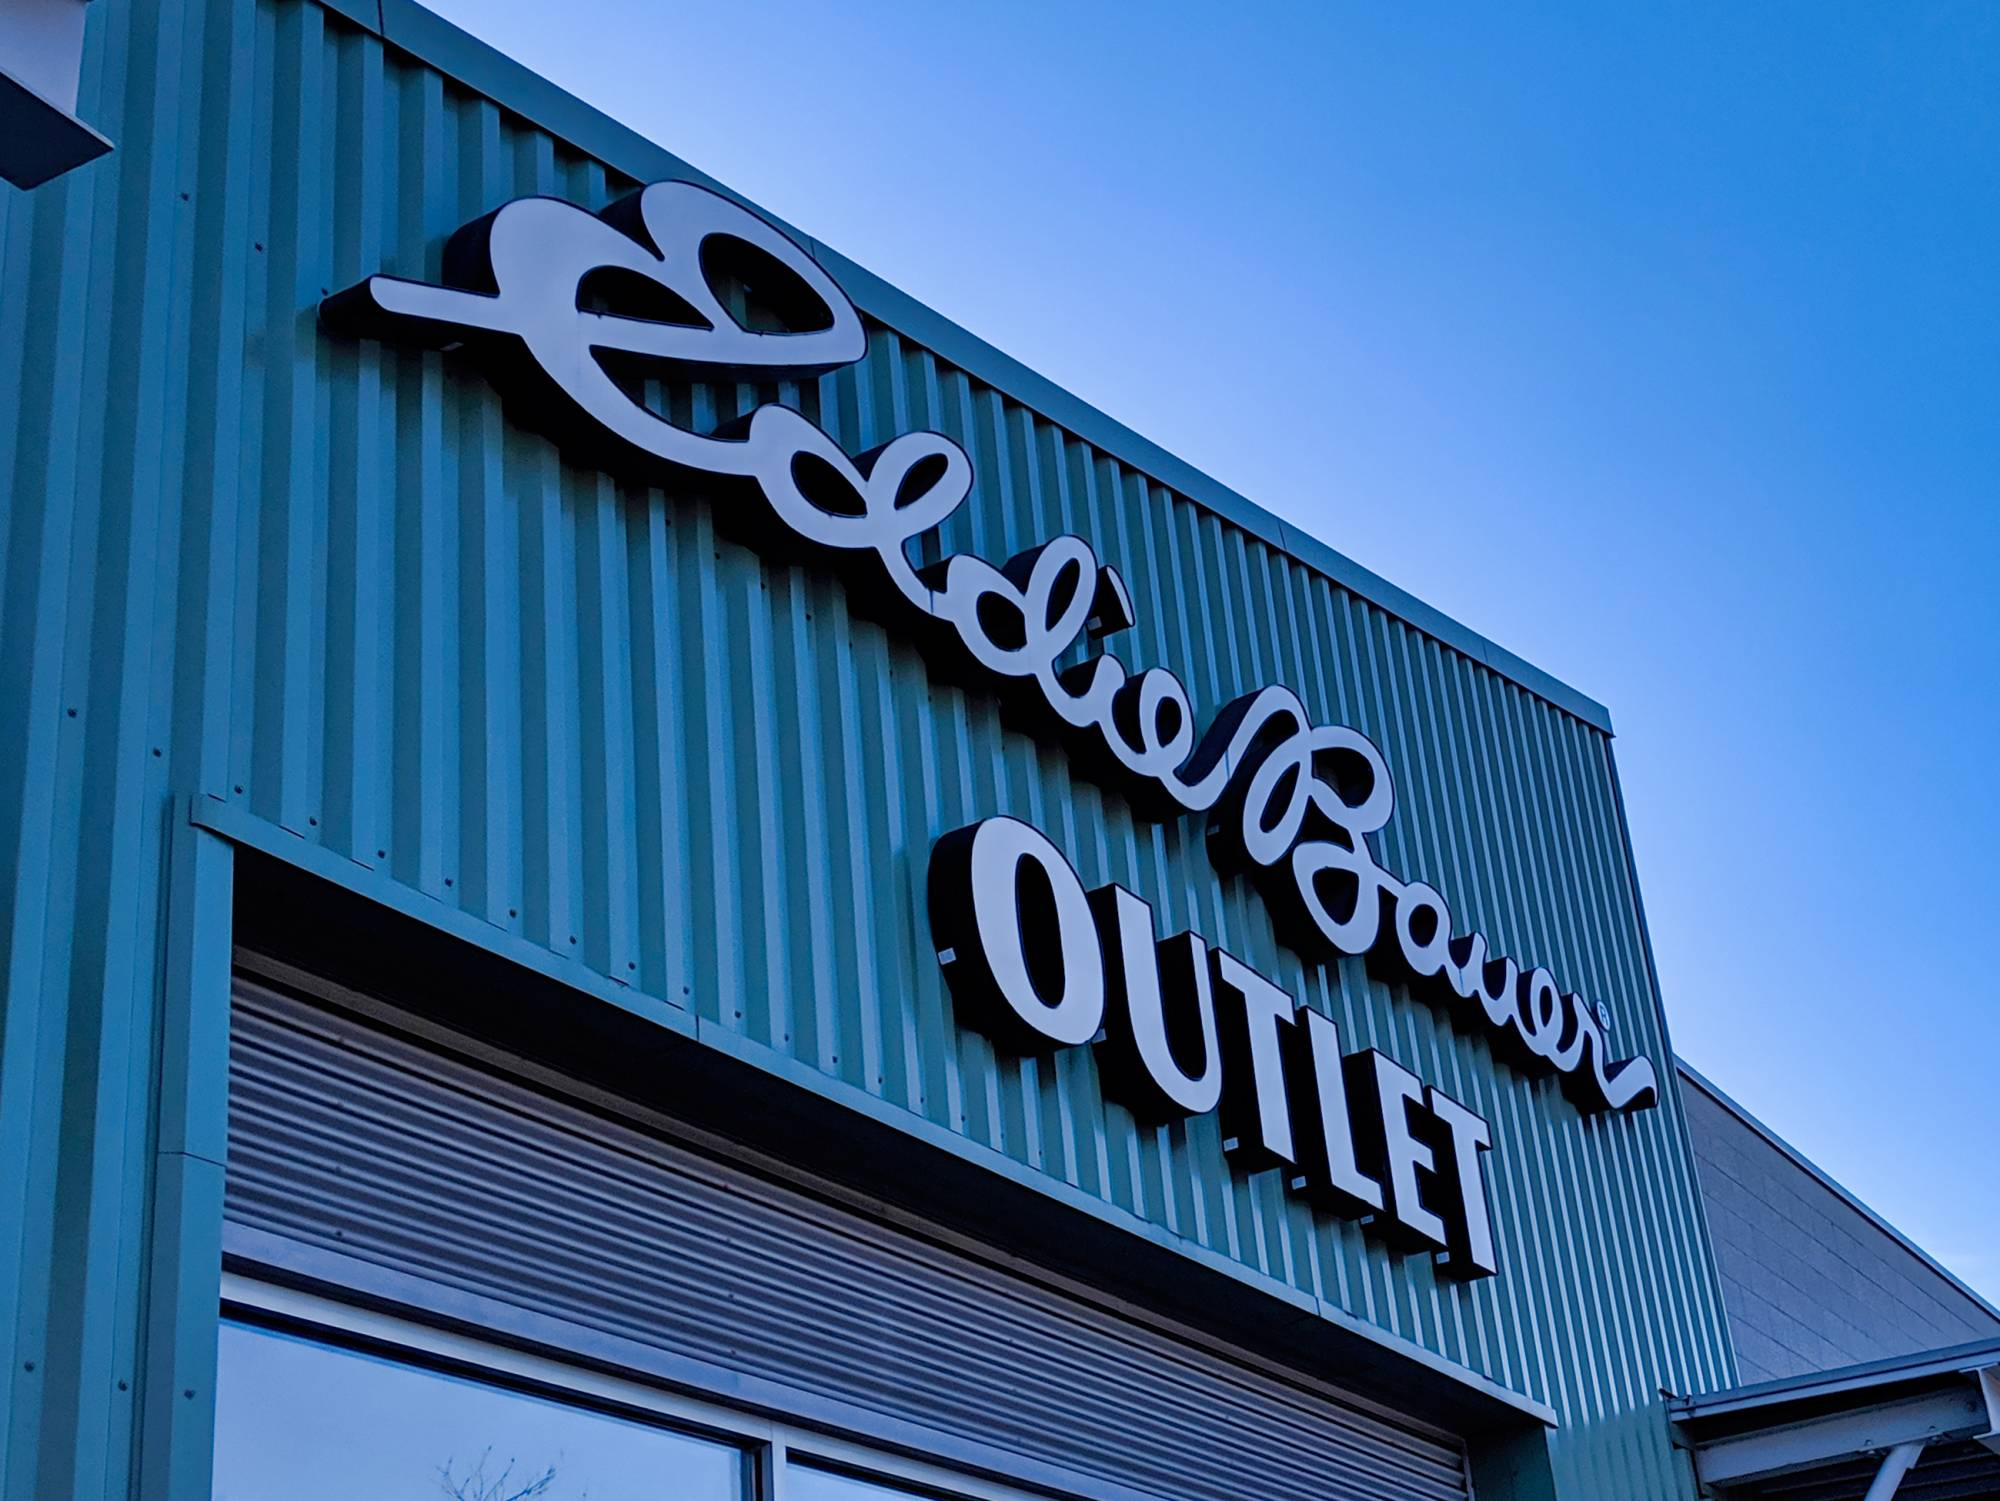 EB Outlet store front